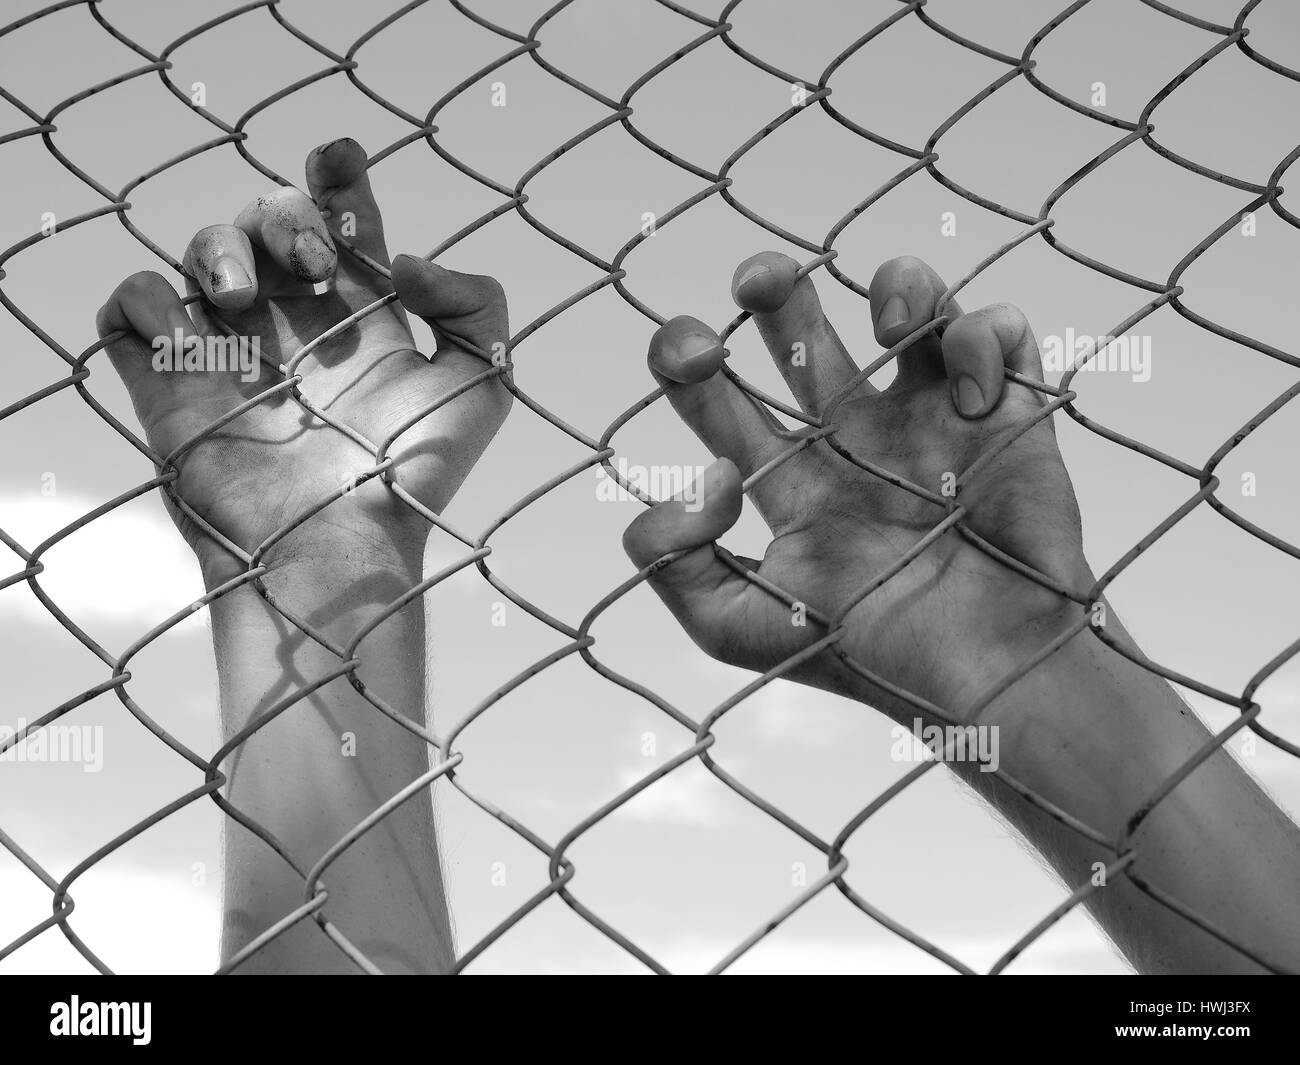 Dirty and discolored hand clinging to a steel wire fence, black and white - Stock Image